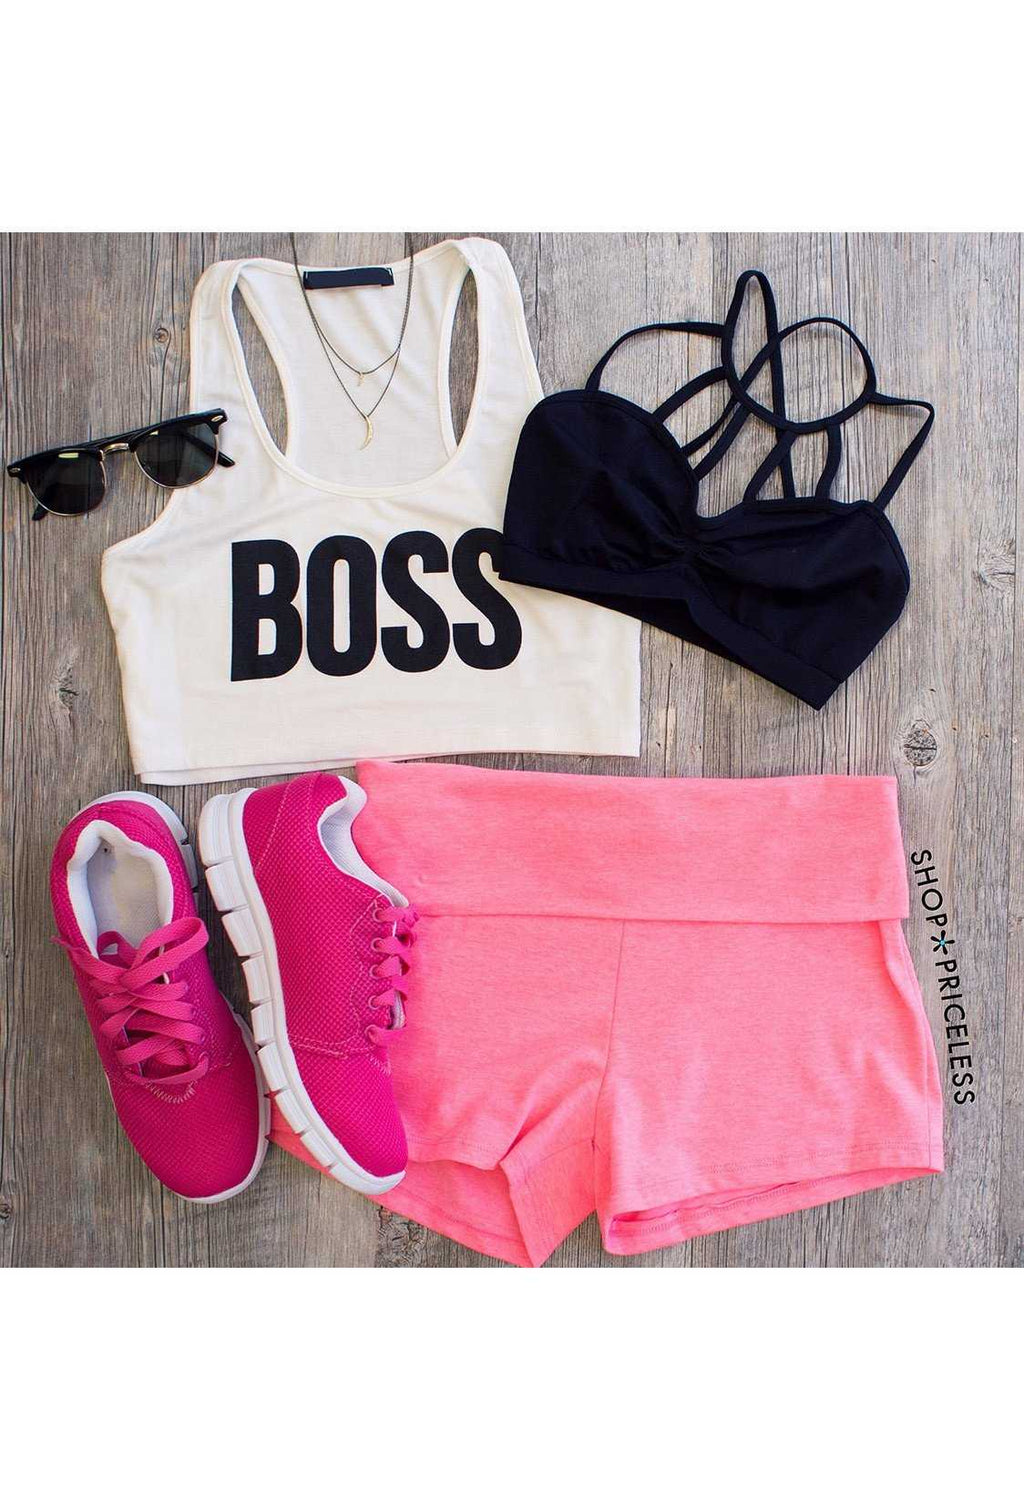 Tops - Boss Crop Top - White